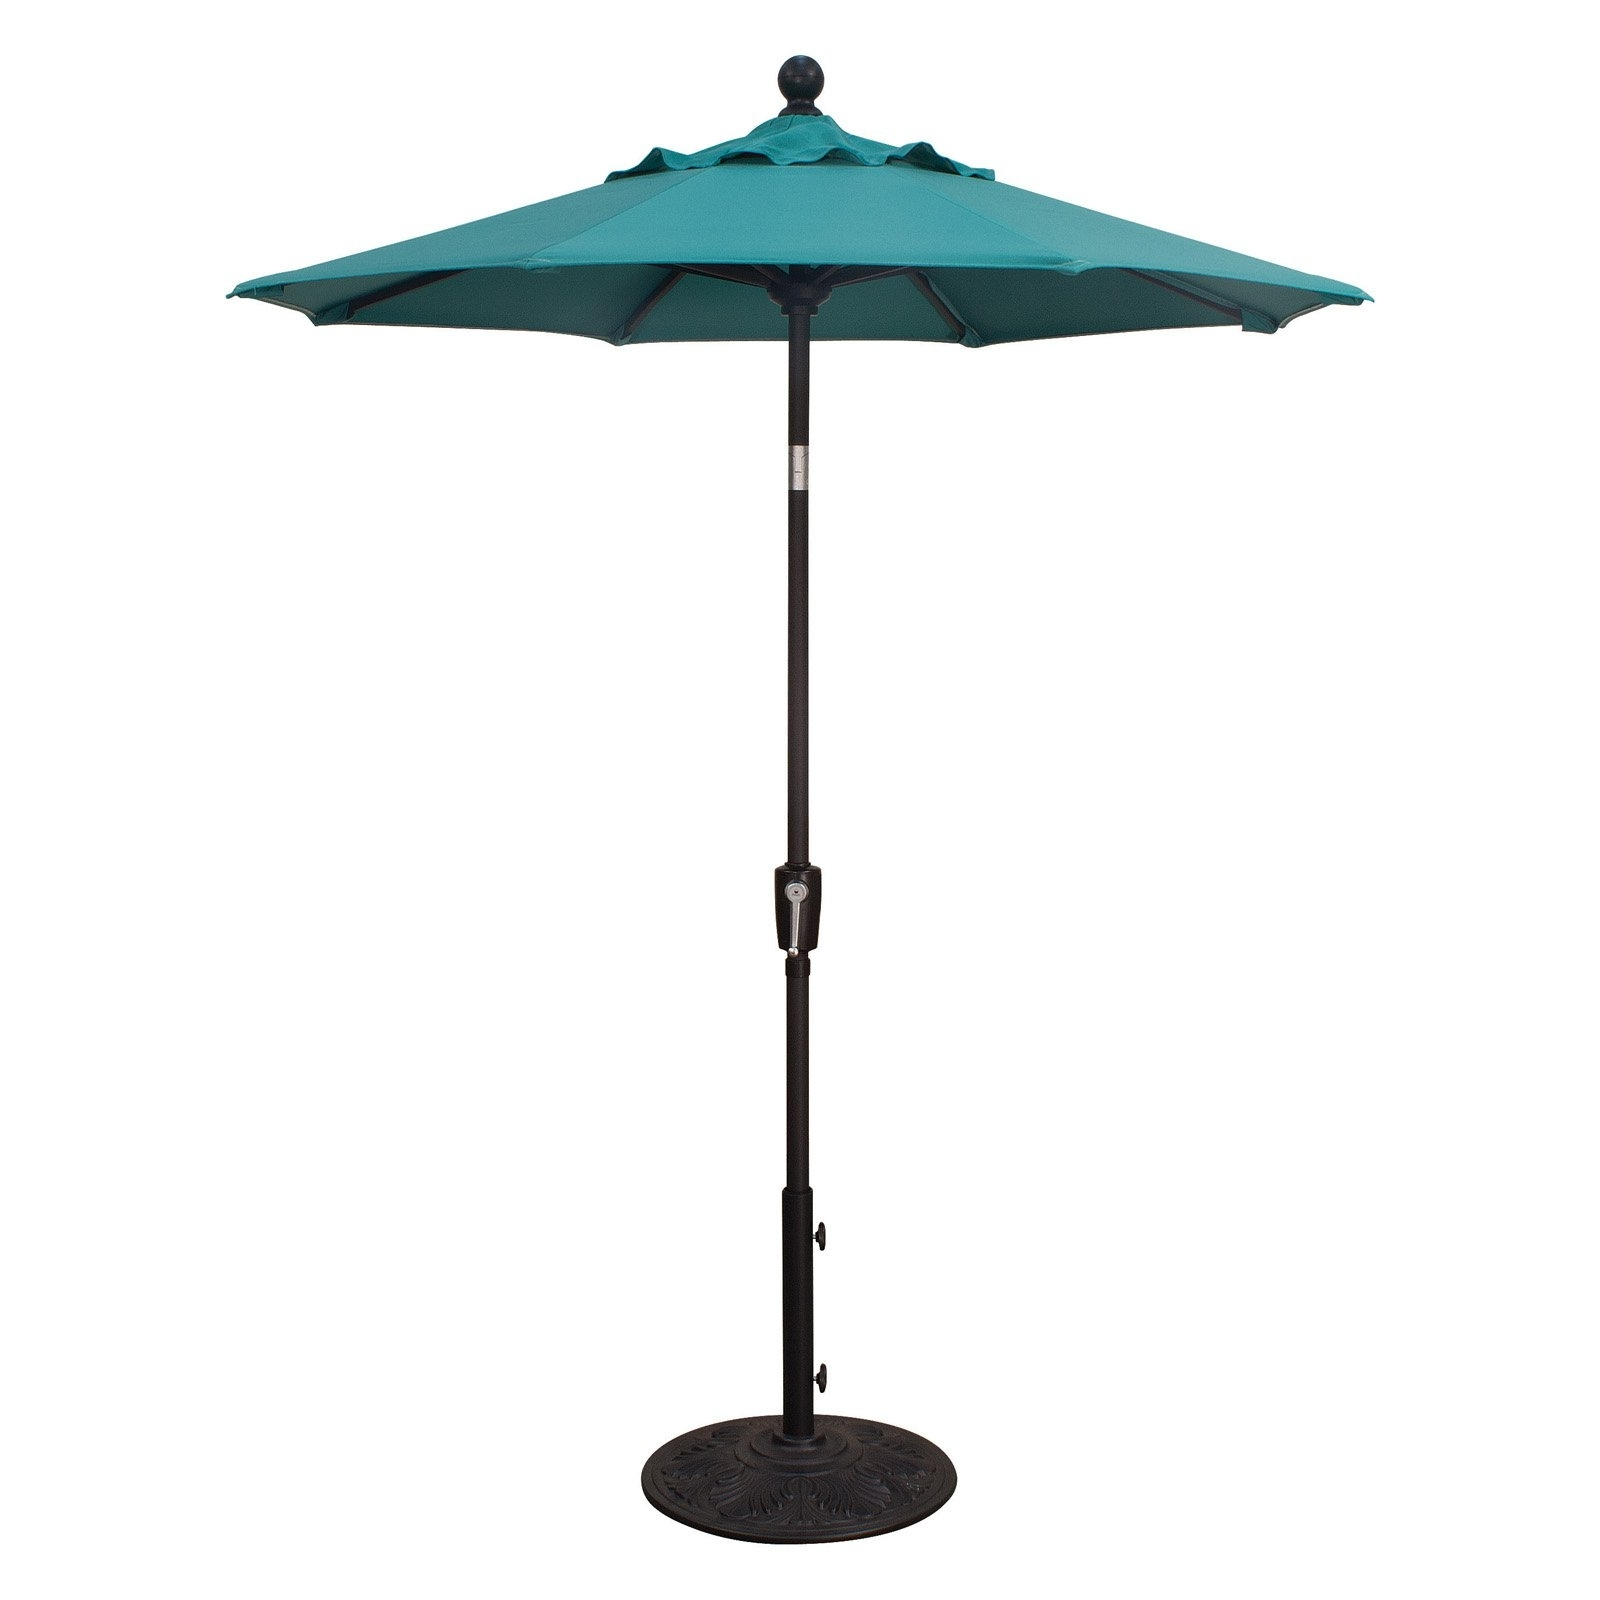 6 Foot Patio Umbrellas • Patio Ideas Throughout Fashionable Yescom Patio Umbrellas (View 2 of 20)